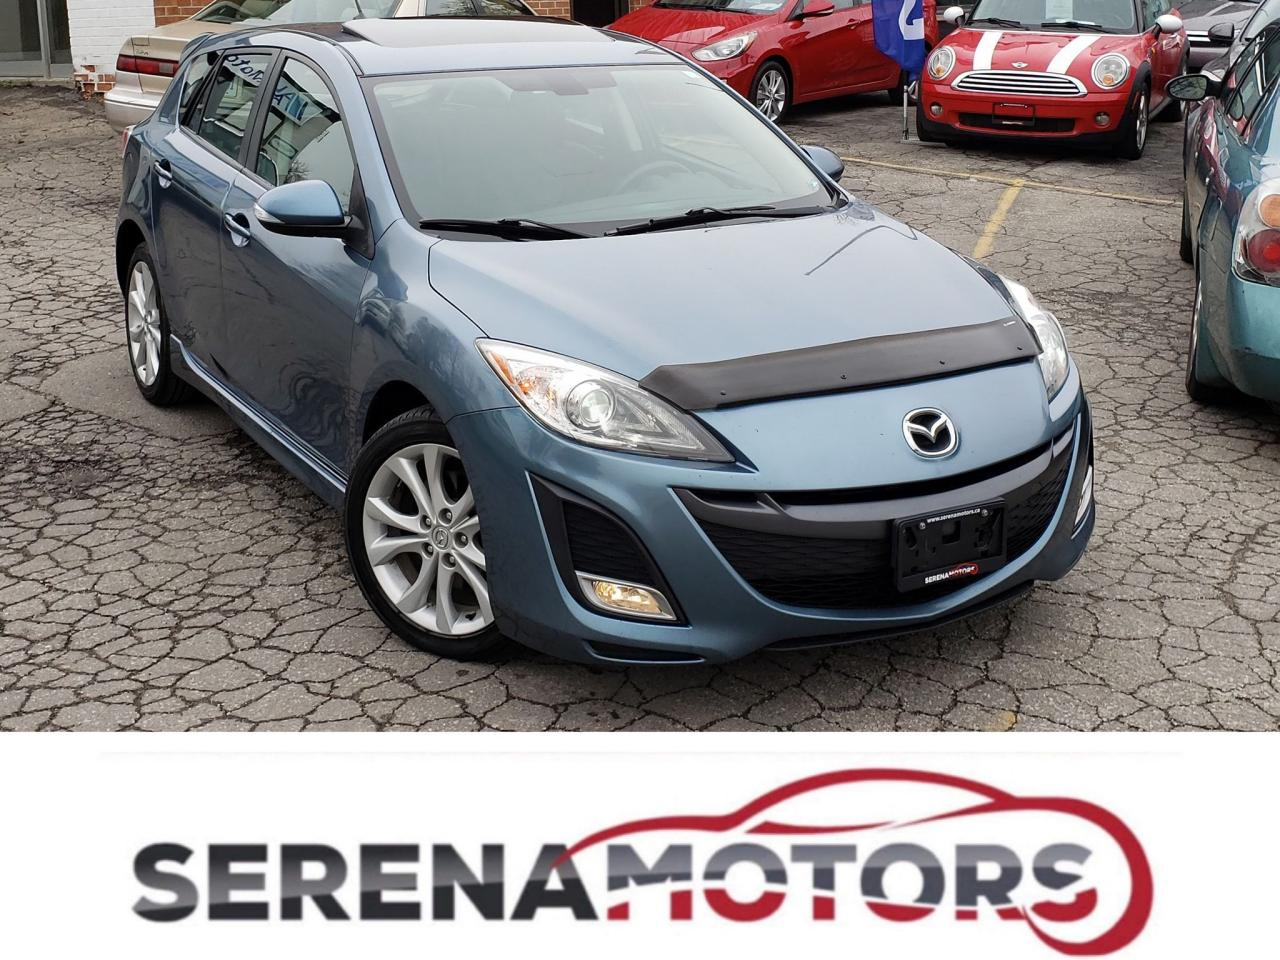 2010 Mazda Mazda3 Serena Motors Ltd